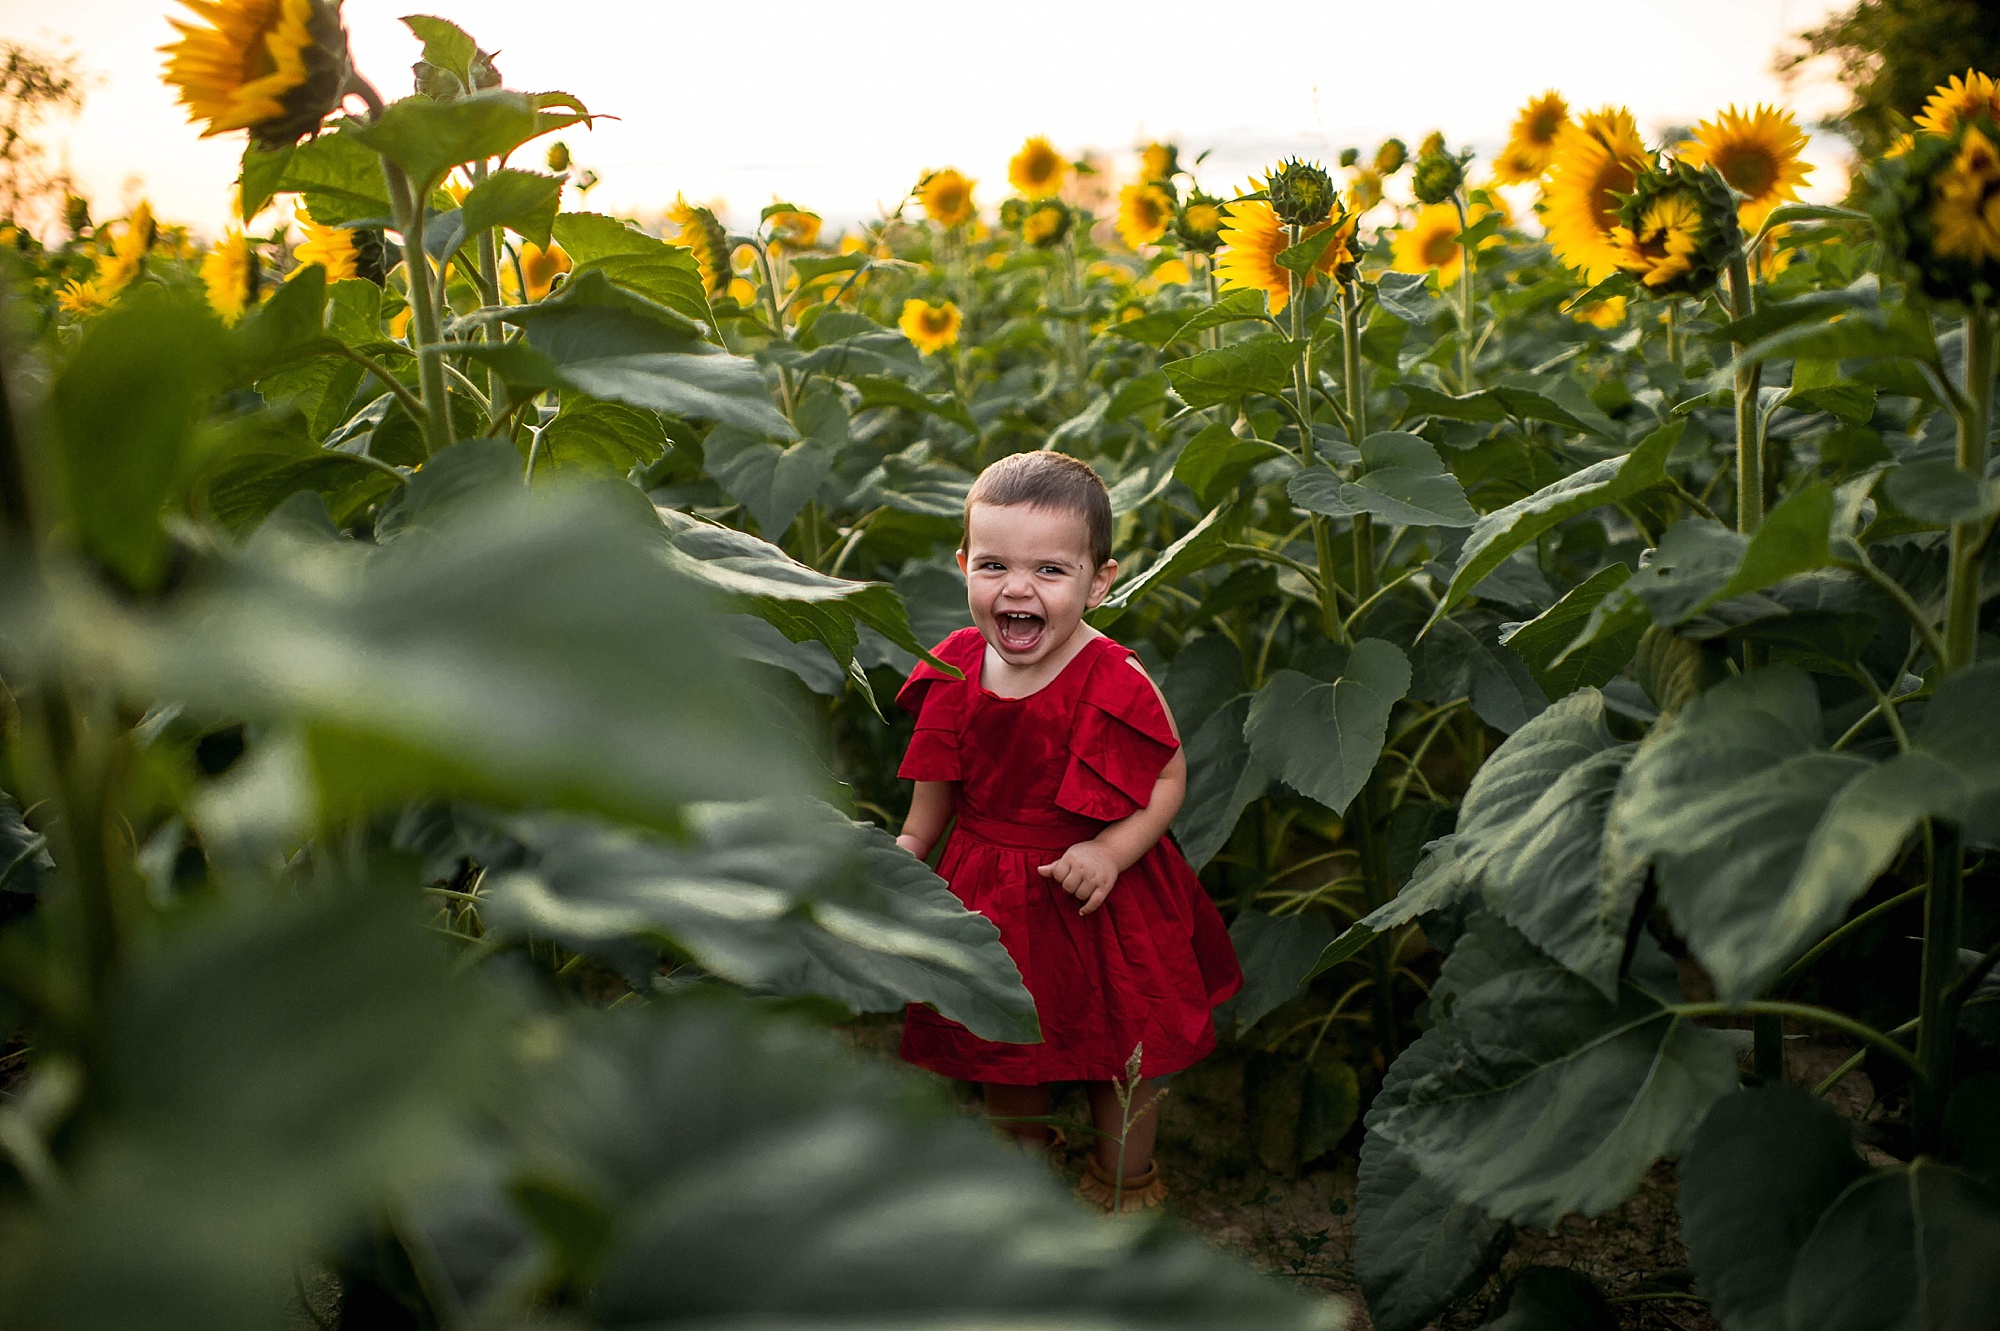 lauren-grayson-photography-cleveland-ohio-photographer-sunflower-fields-sunset-golden-hour-photo-shoot-mommy-and-me-family-child-photographer_0582.jpg